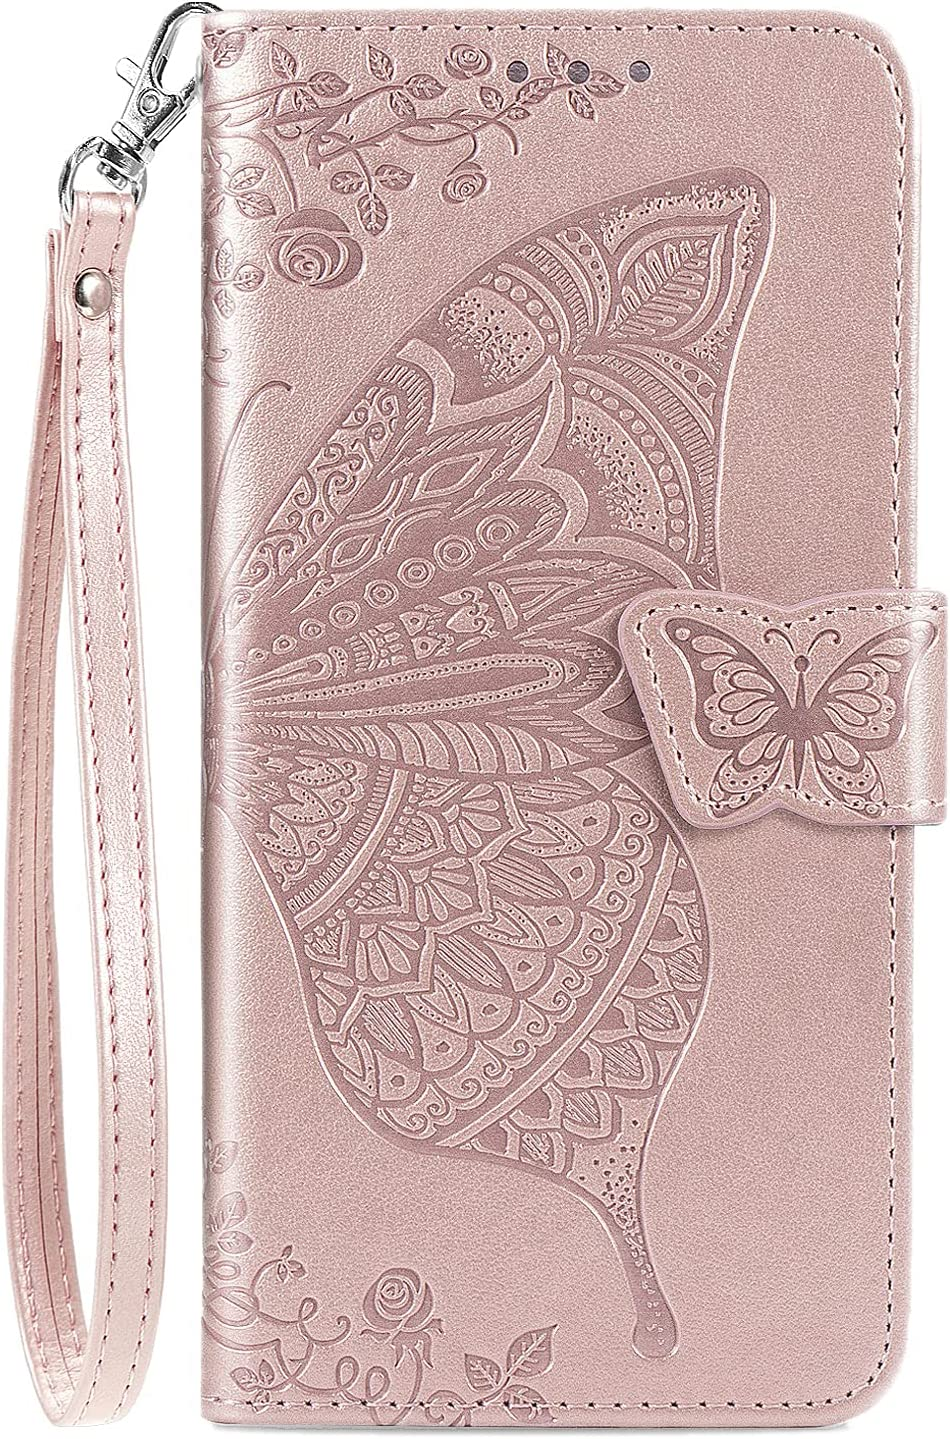 DiGPlus Galaxy S21 5G Wallet Case, [Butterfly & Flower Embossed] PU Leather Wallet Case Flip Protective Phone Cover with Card Slots and Kickstand for Samsung Galaxy S21 6.2-Inch (Rose Gold)